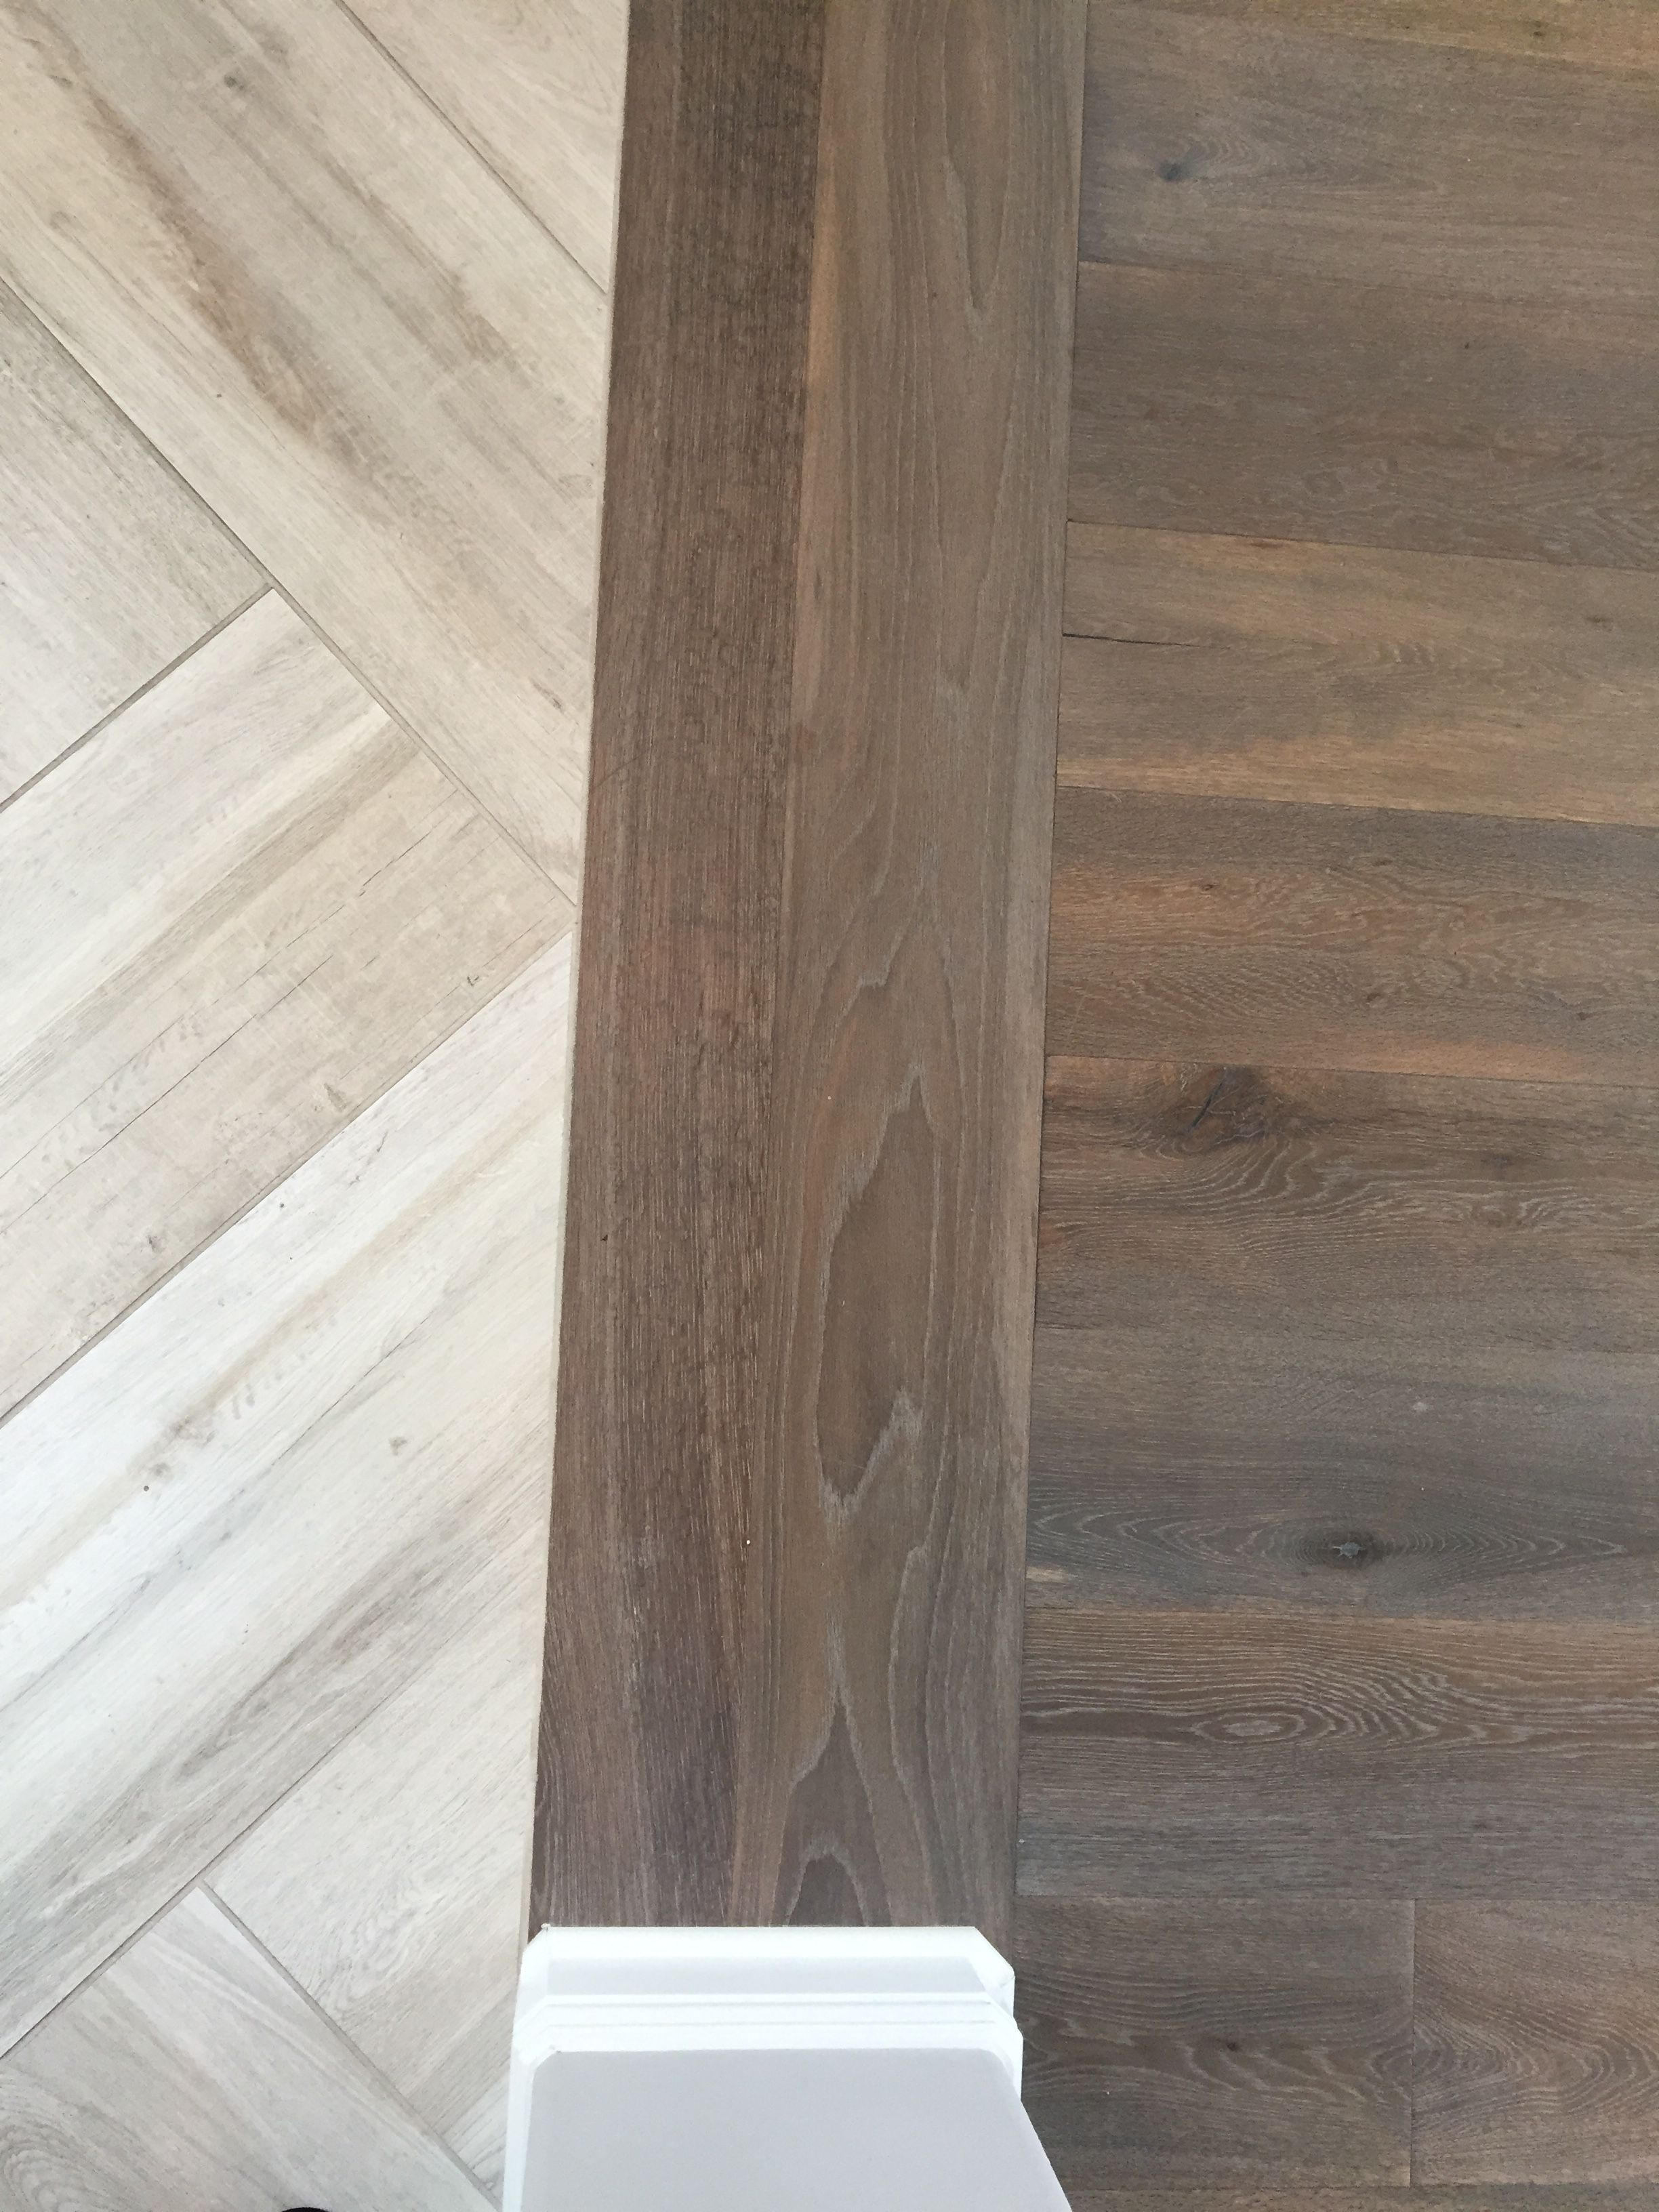 Foyer Tile To Wood Transition : Floor transition laminate to herringbone tile pattern